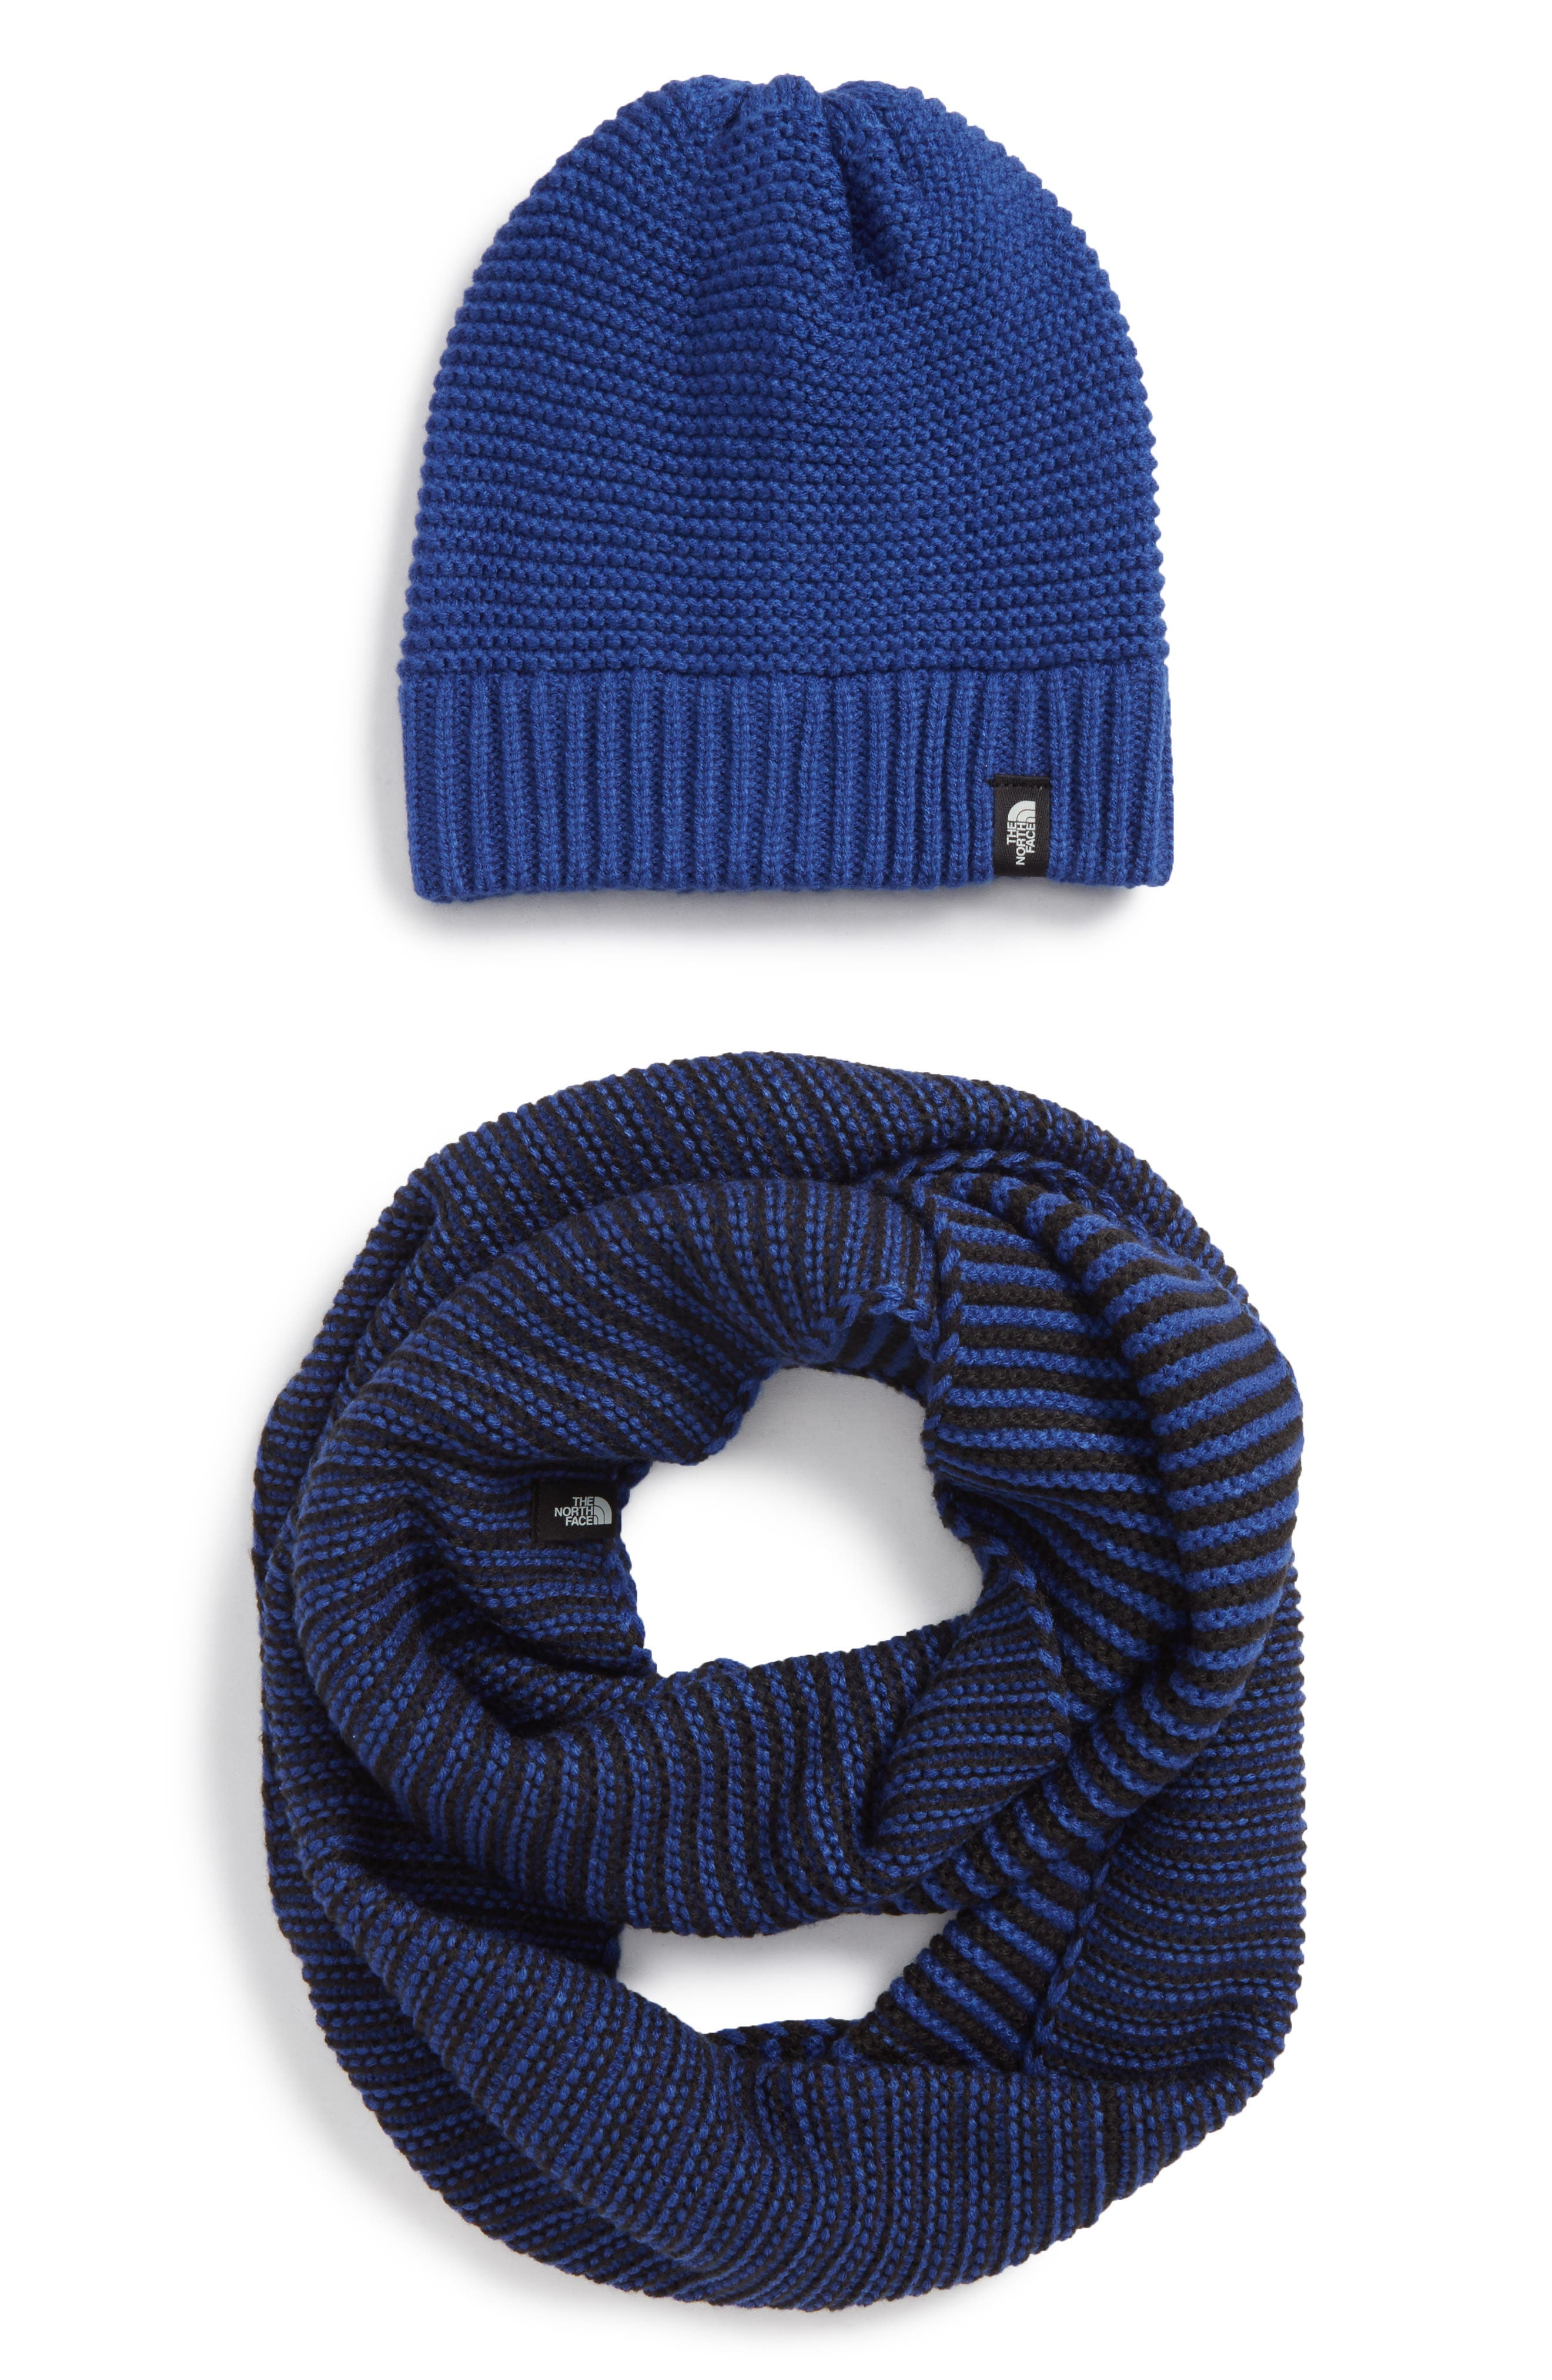 Alternate Image 1 Selected - The North Face Purrl Stitch Beanie & Infinity Scarf Set